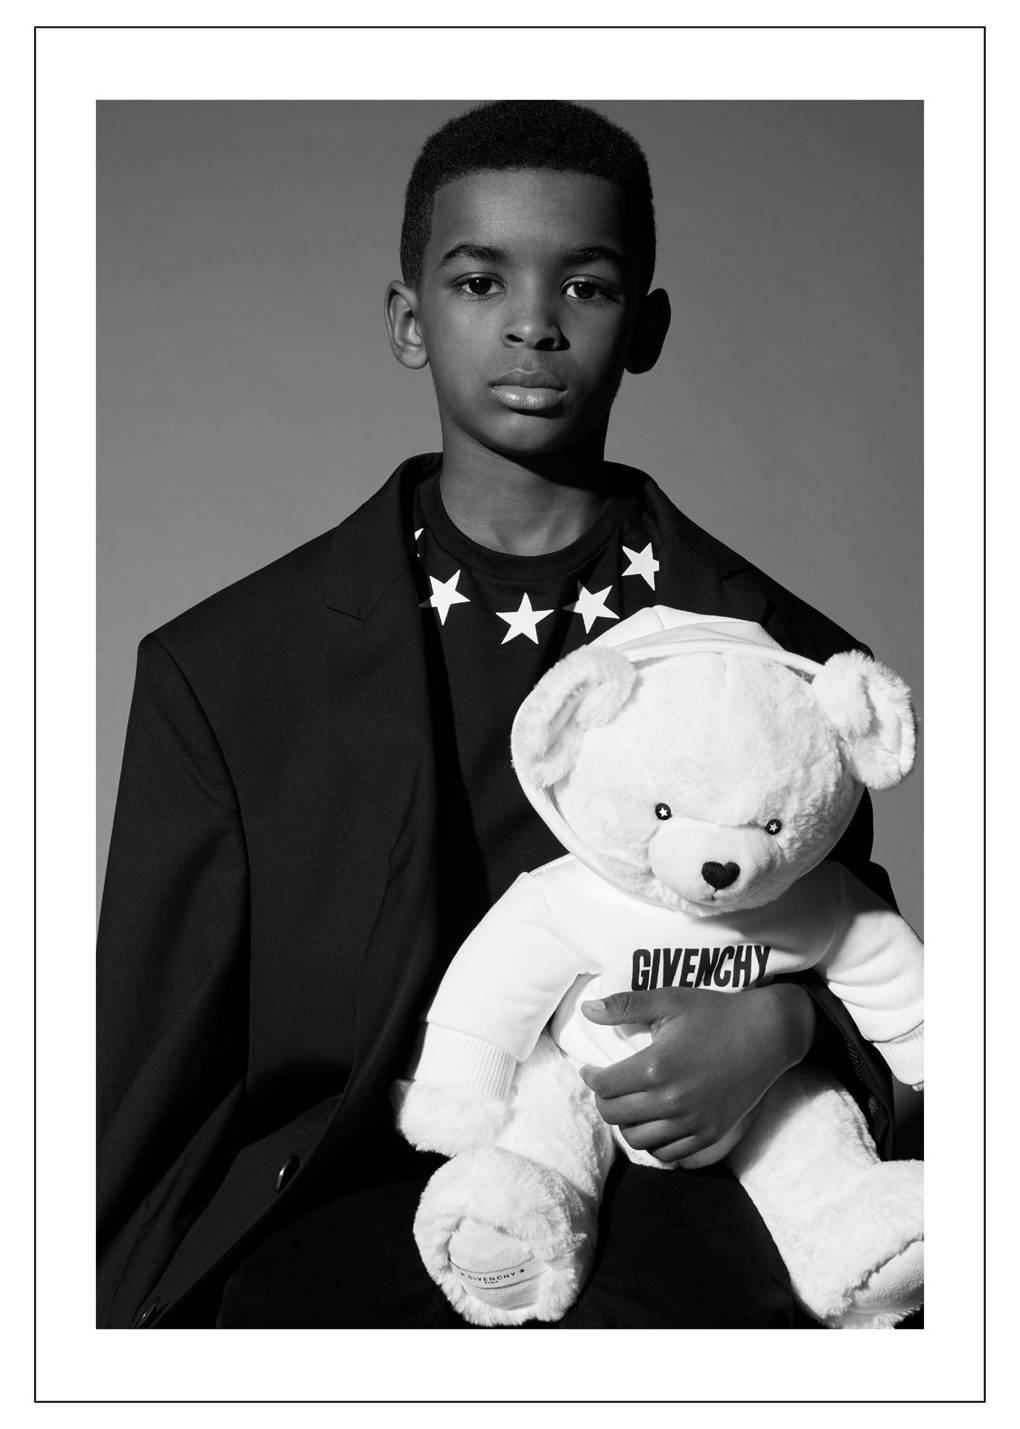 18be285bc Givenchy Childrenswear Kids Collection | British Vogue